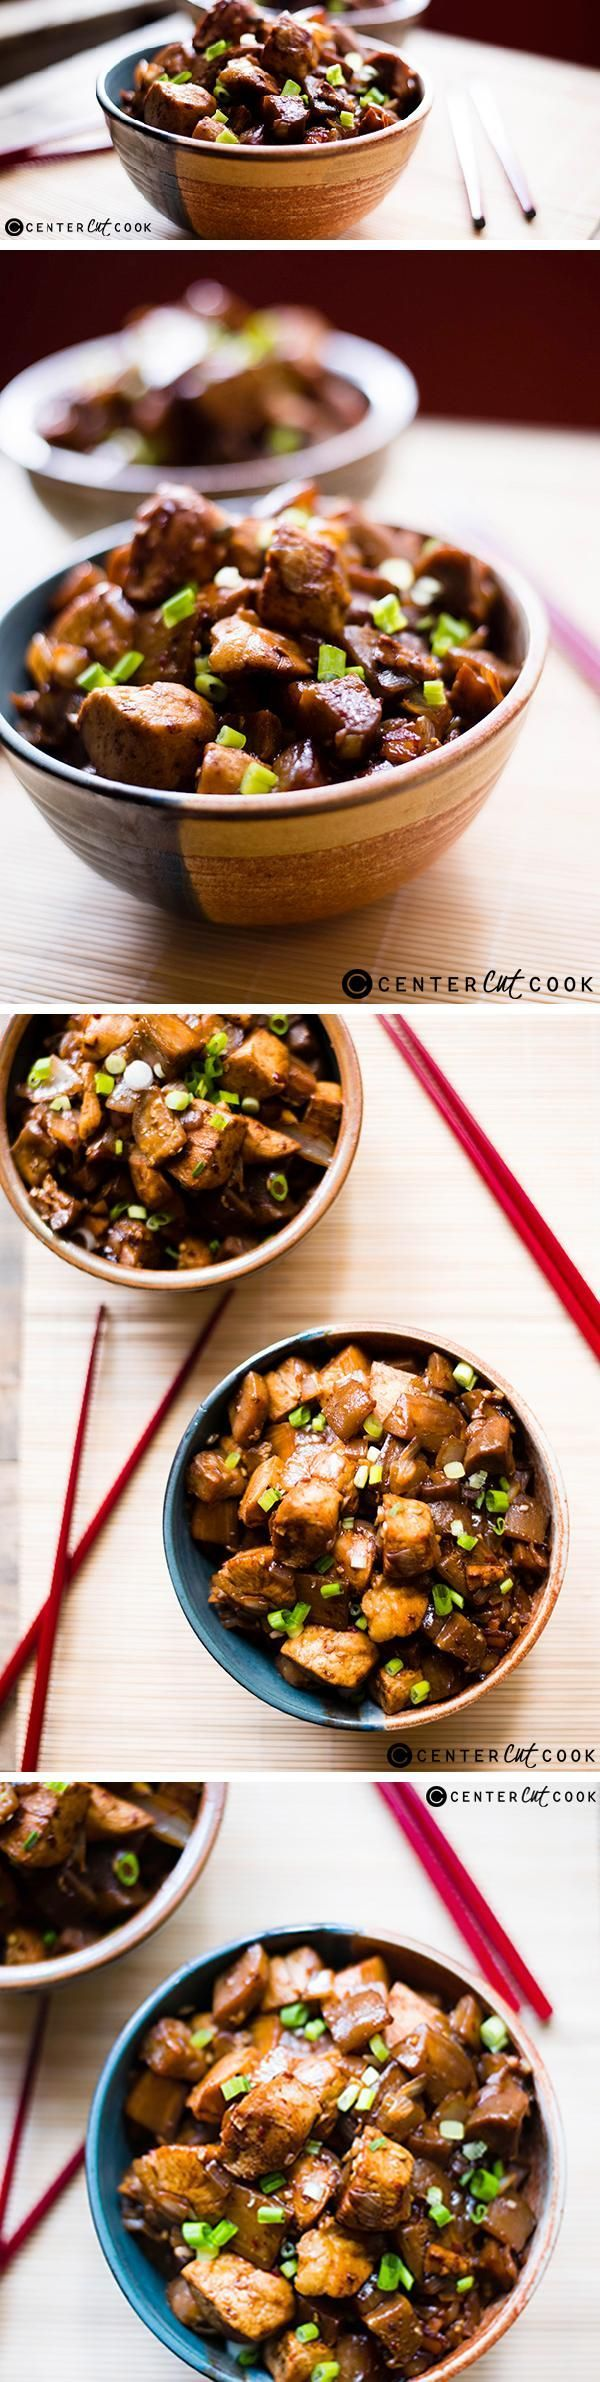 Make this flavorful, healthy, and delicious SPICY CHICKEN And EGGPLANT STIR FRY dinner in just 25 minutes!